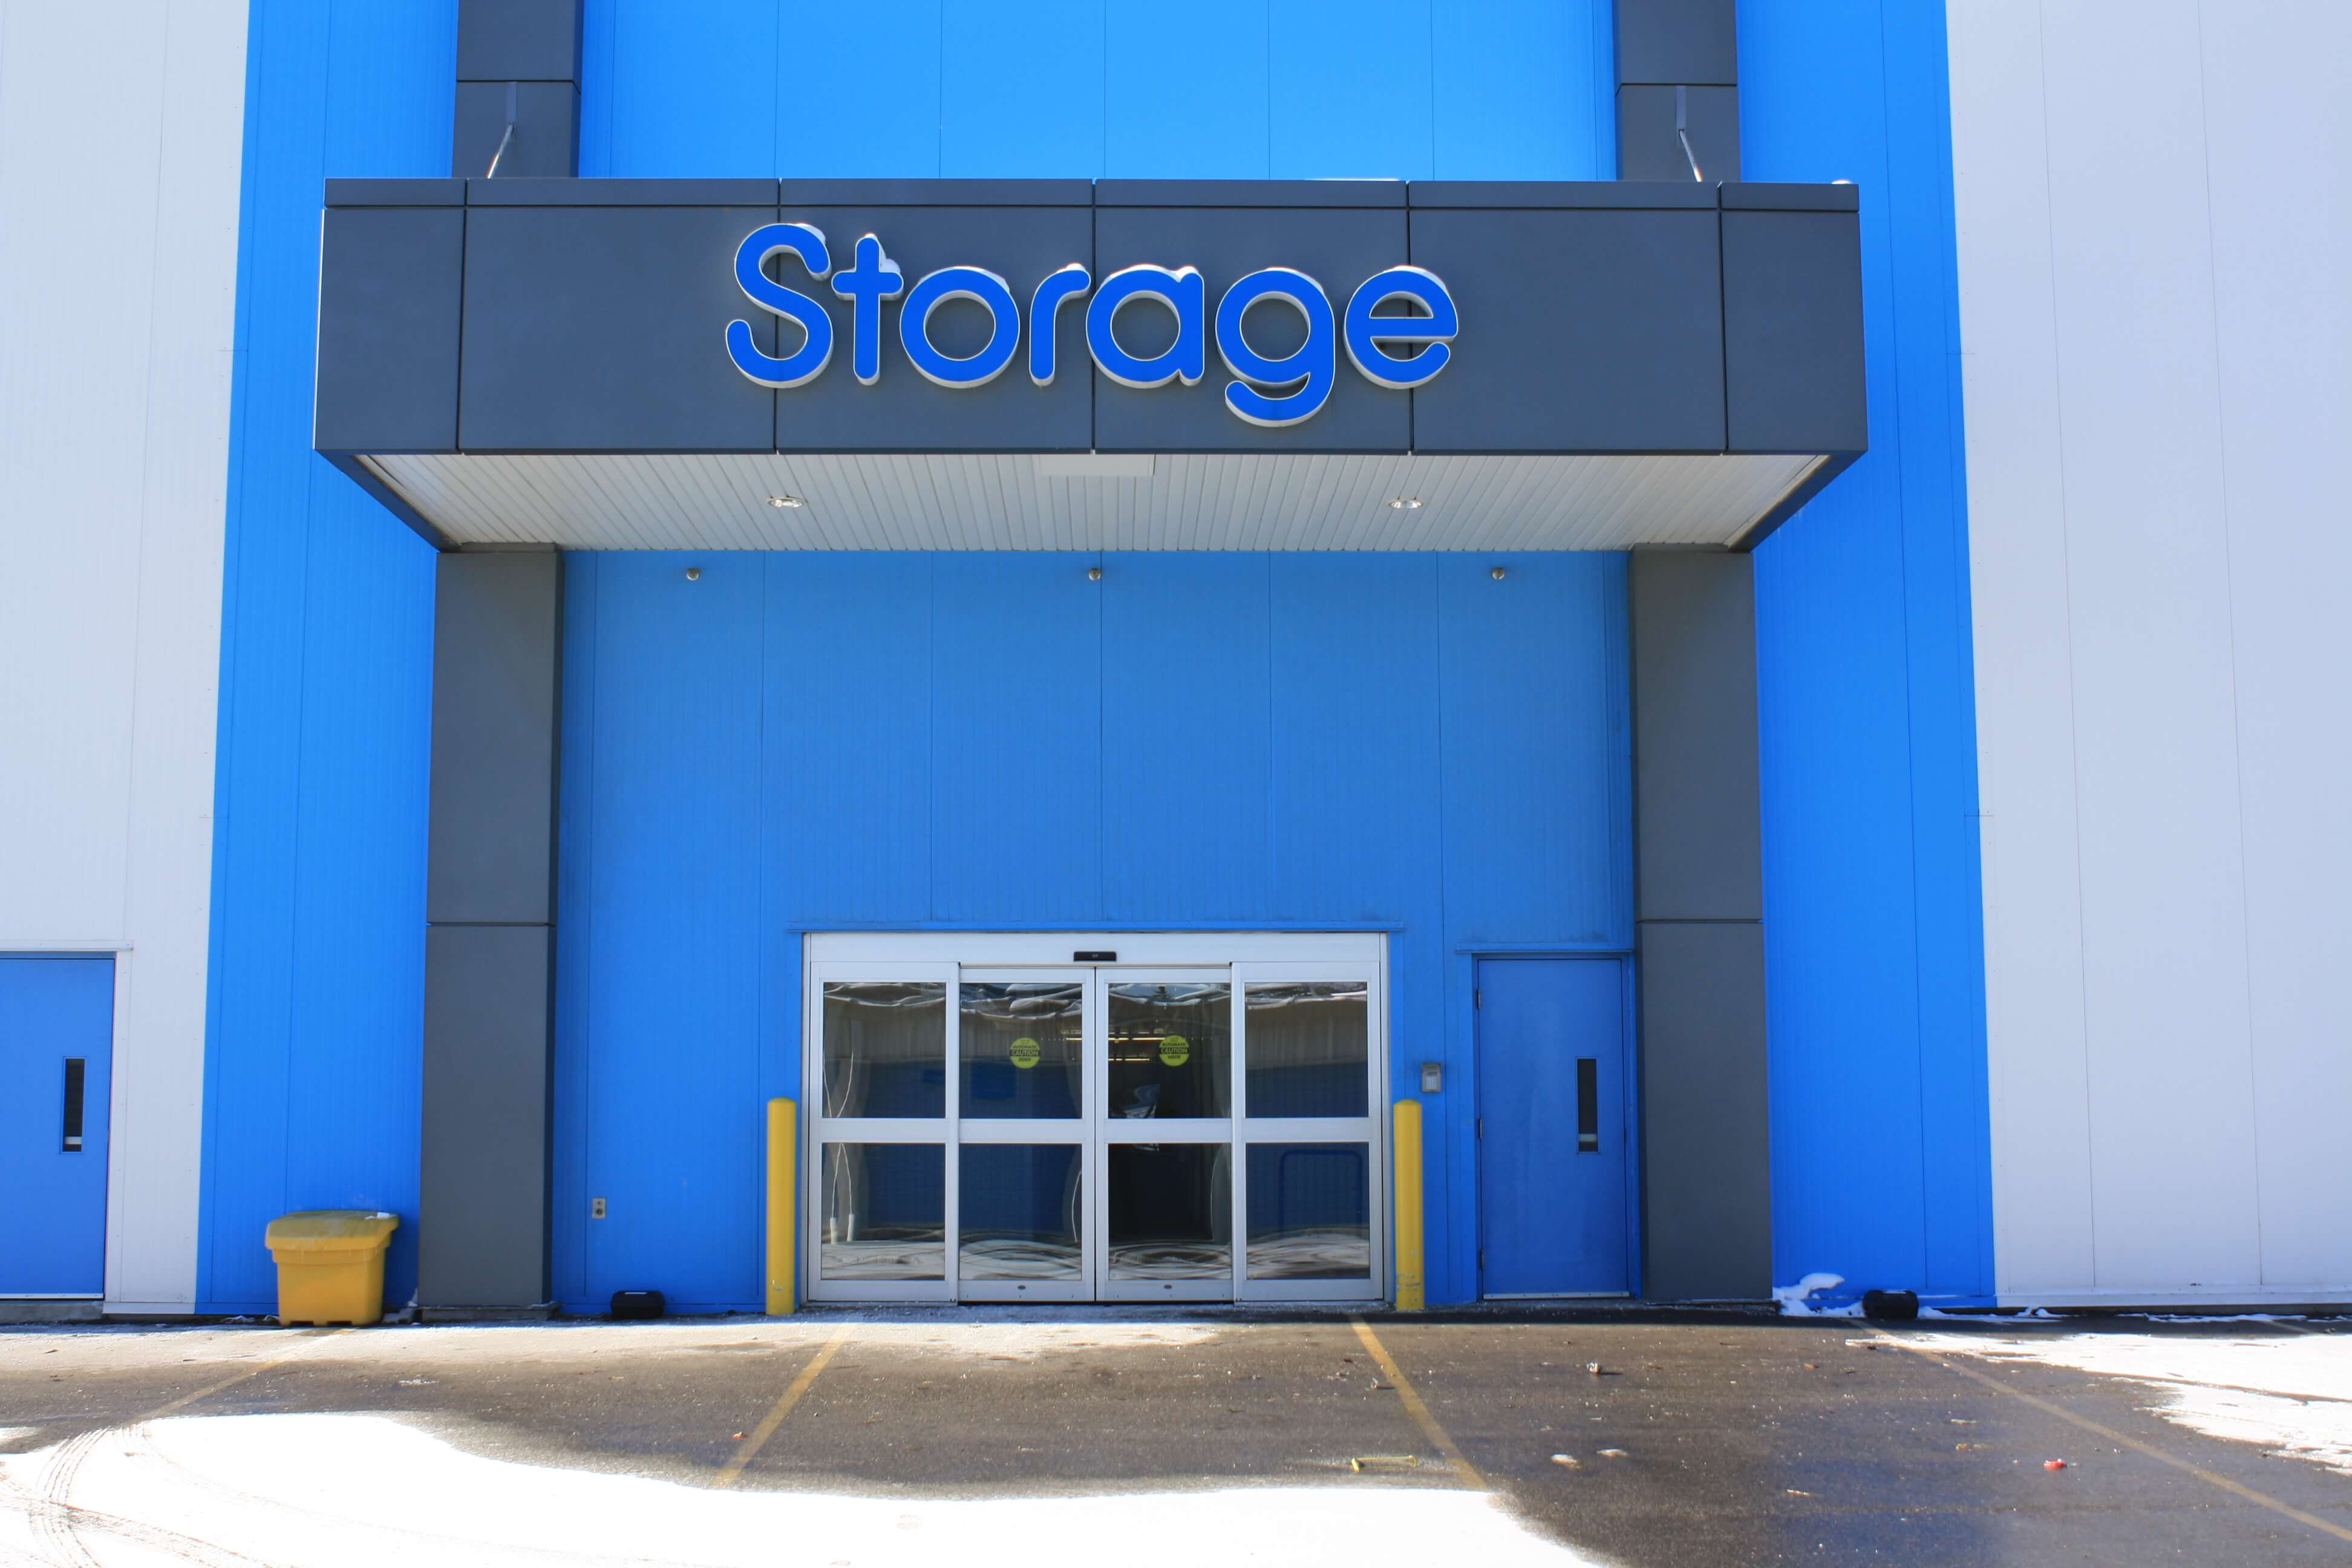 Front entry into Smart Stop self storage facility located at 8 Brewster Road, Brampton Ontario Canada